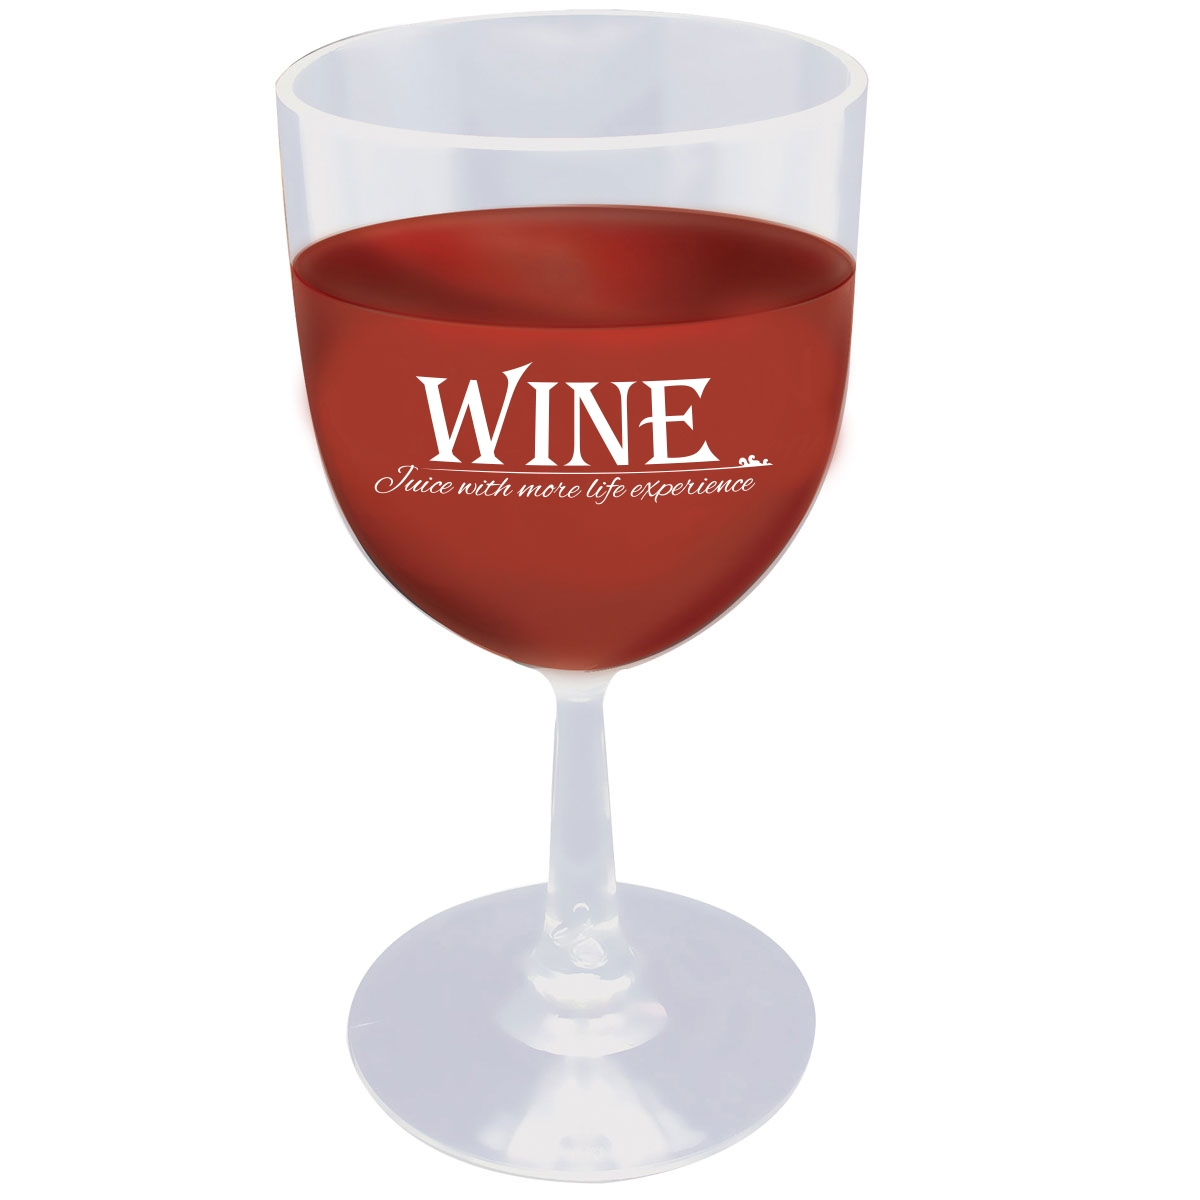 Plastic wine cup with funny saying